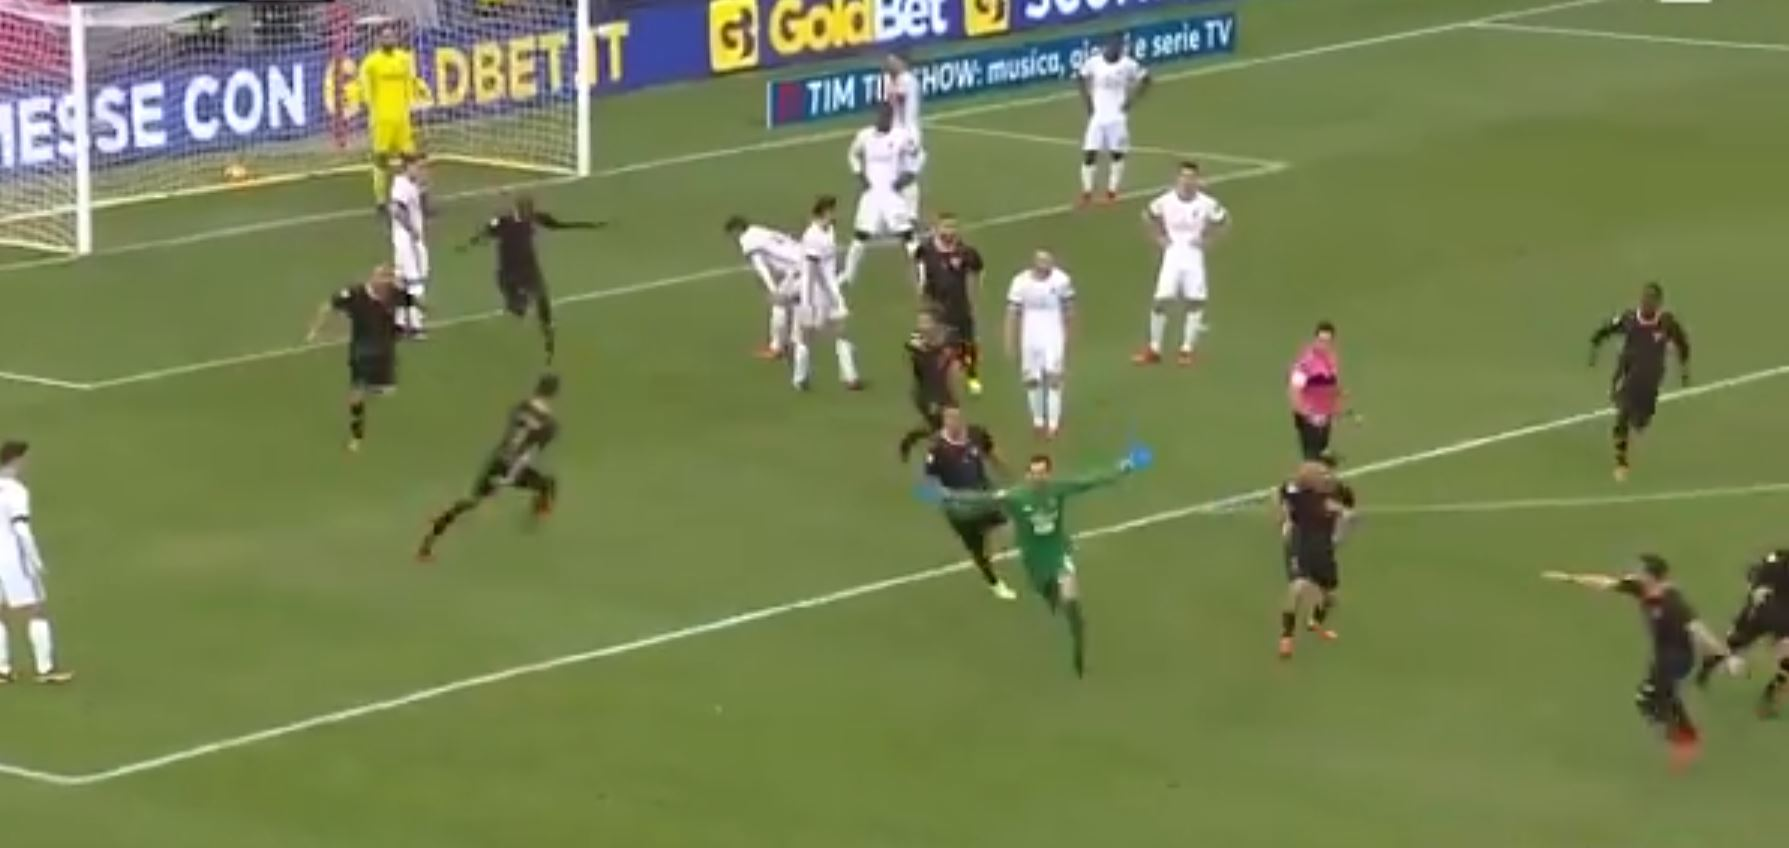 Goalkeeper wins Benevento's first point of the season with last-minute goal against AC Milan